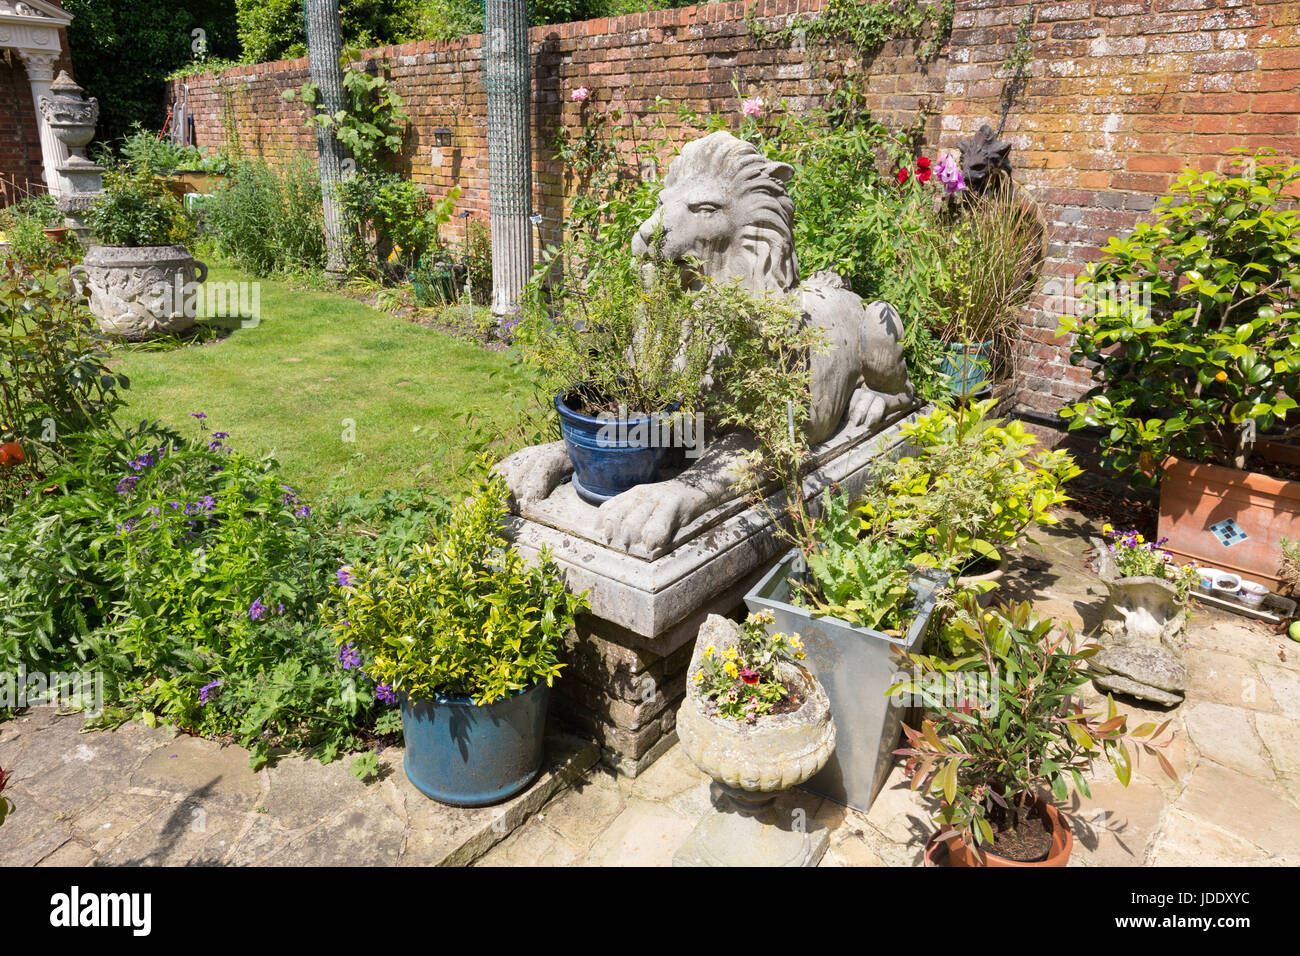 Genial Large Garden Ornaments Including Lion Statues And Pots In An Ornate English  Garden, Kent England